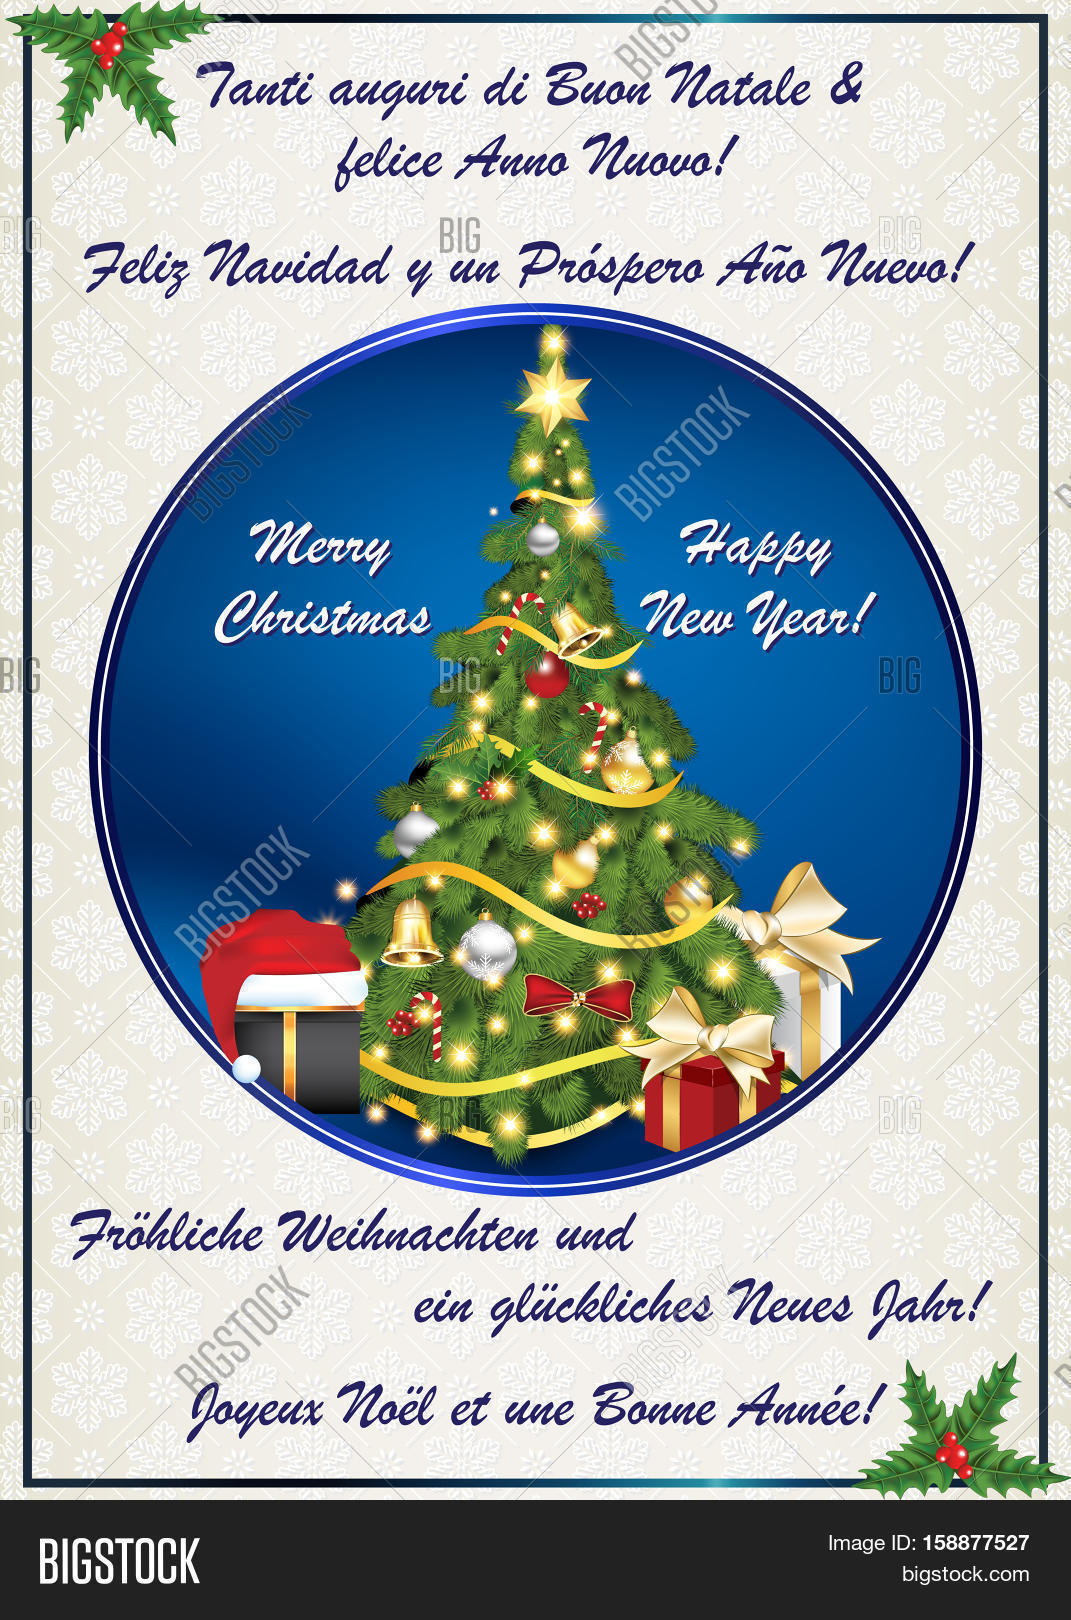 multilanguage classic winter holiday greeting card merry christmas and happy new year italian - Merry Christmas And Happy New Year In Italian